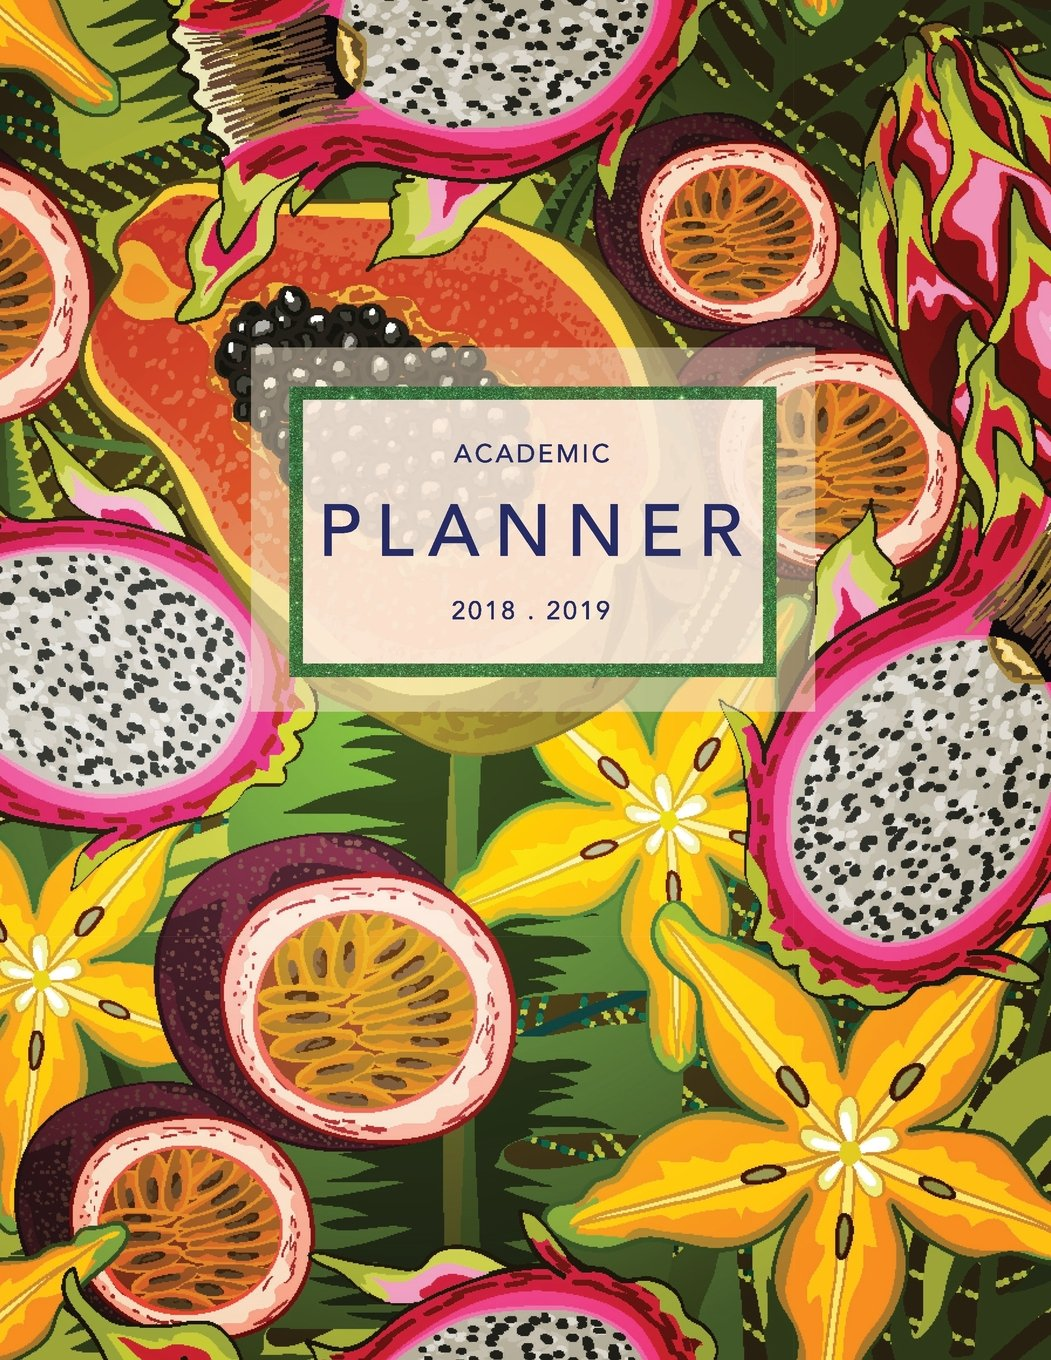 Academic Planner 2018-2019: Tropical Plants | Weekly + Monthly Views | To Do Lists Goal-Setting Class Schedules + More (August 2018 - July 2019): Volume 4 (2018-2019 Student Planners)